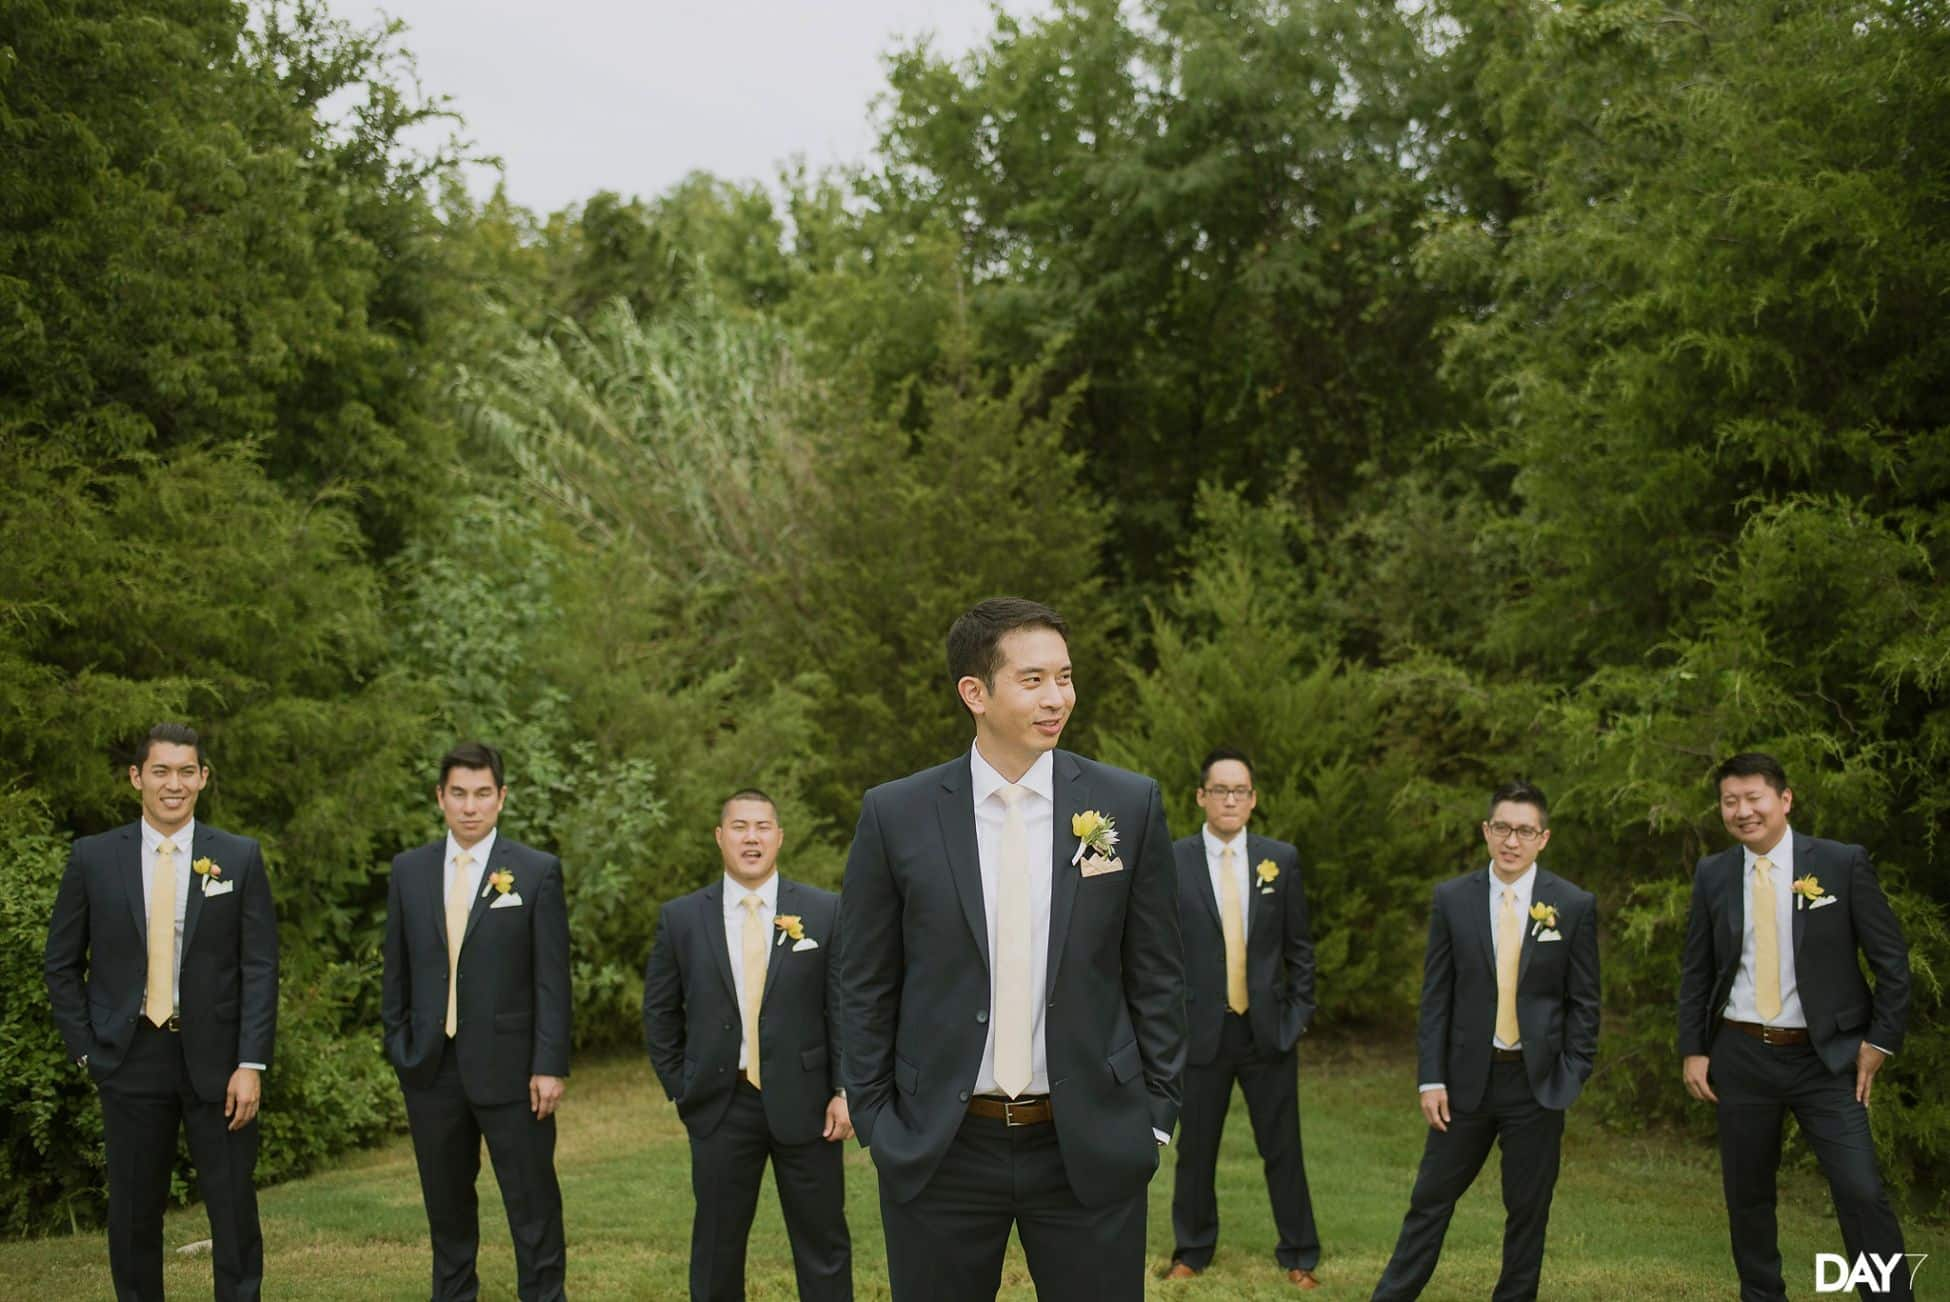 The Laurel Dallas Wedding